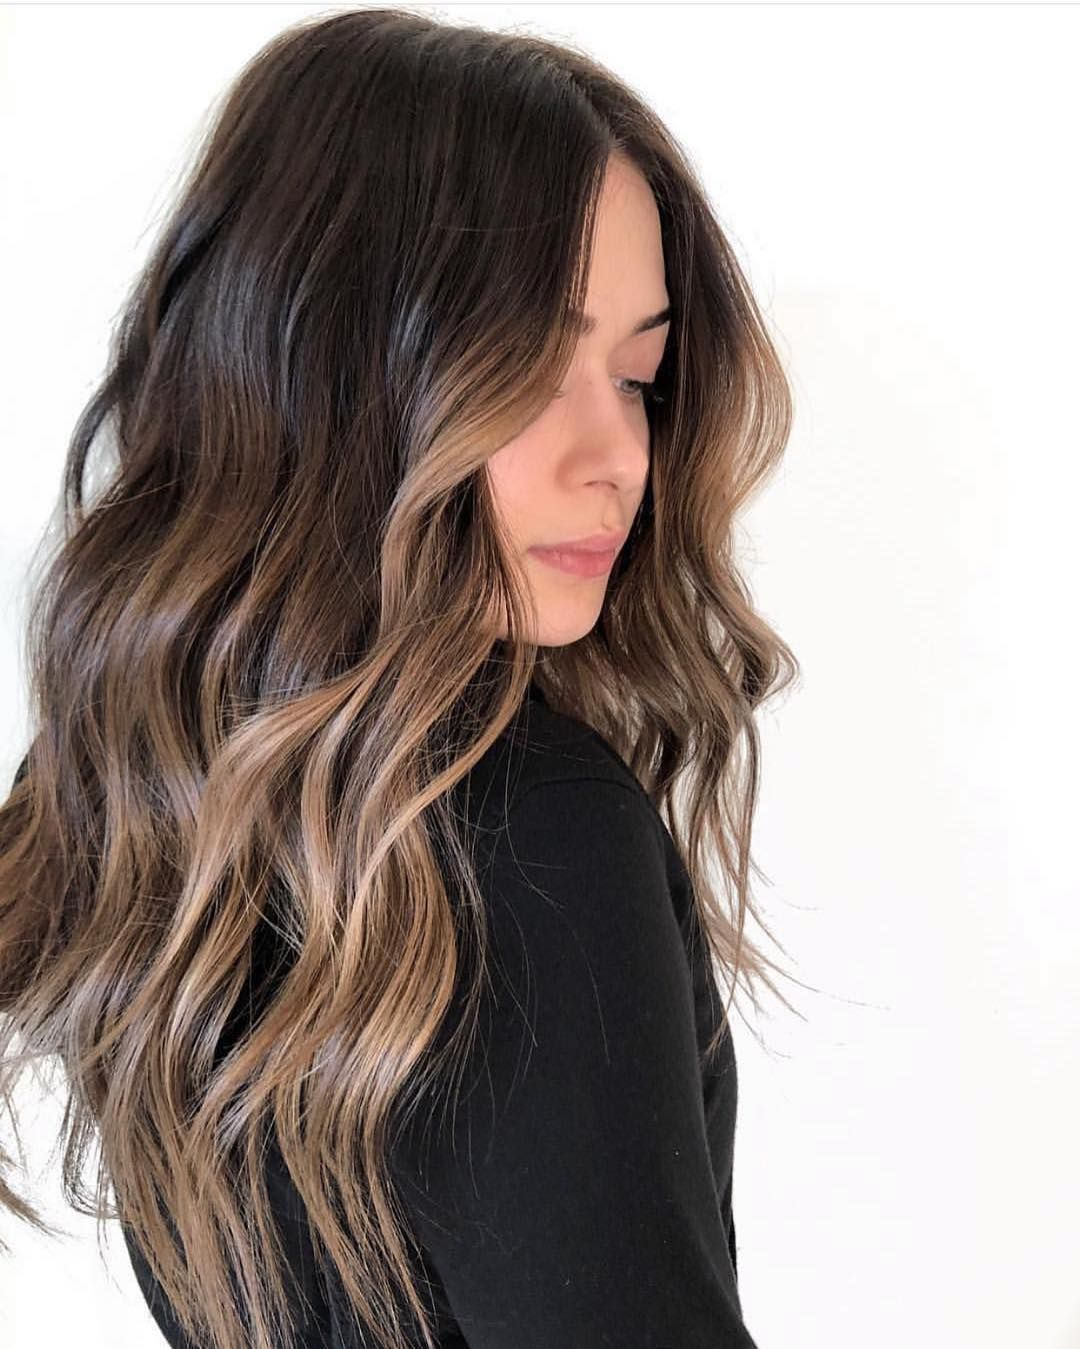 Hairstyles For Women Fall 2019